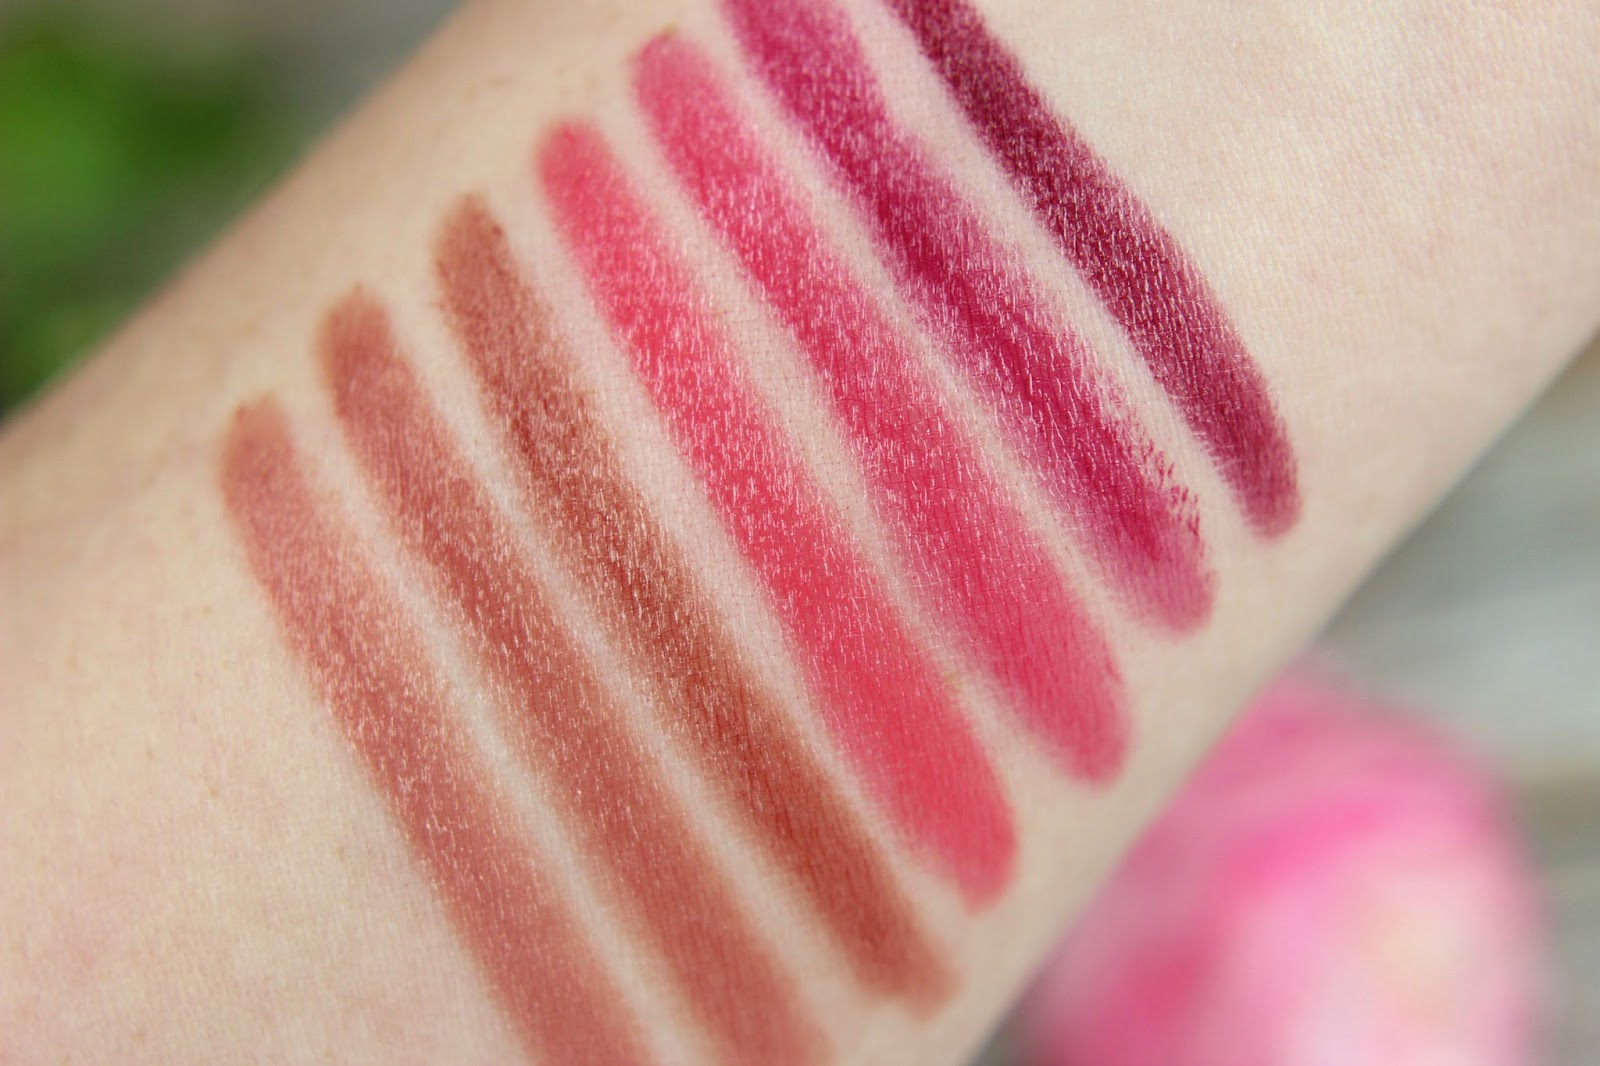 2016, berry, CATRICE, cream lip artist, cremige textur, dare to go bare, drogerie, farbtrends, glänzende lippen, glossiges finish, herbst, lippen, lippenstift, neues sortiment, nude, review, swatches, tragebilder,